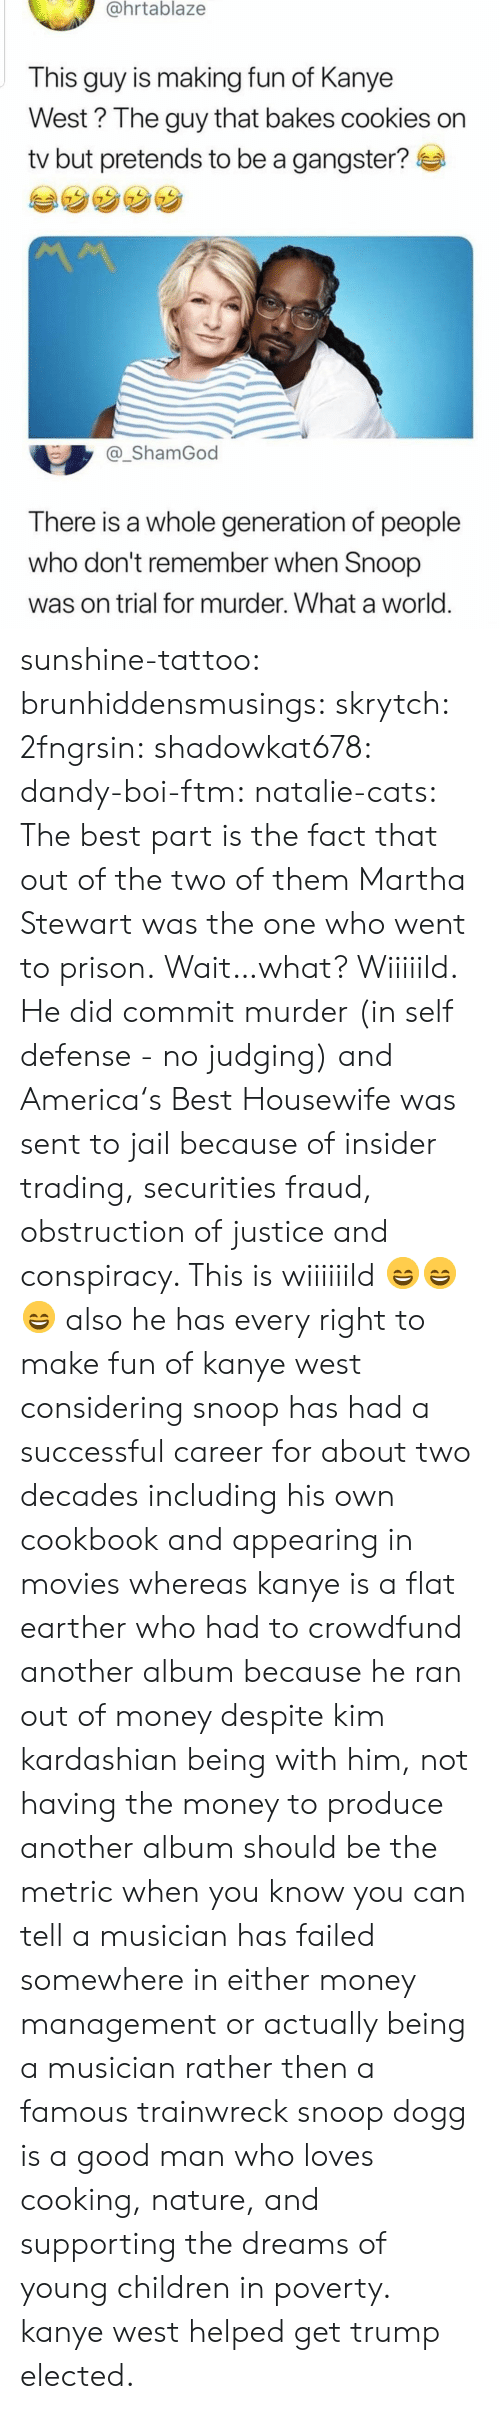 Conspiracy: @hrtablaze  This guy is making fun of Kanye  West? The guy that bakes cookies on  tv but pretends to be a gangster?  _ShamGod  There is a whole generation of people  who don't remember when Snoop  was on trial for murder. What a world sunshine-tattoo: brunhiddensmusings:  skrytch:  2fngrsin:  shadowkat678:  dandy-boi-ftm:   natalie-cats:   The best part is the fact that out of the two of them Martha Stewart was the one who went to prison.   Wait…what?   Wiiiiild. He did commit murder (in self defense - no judging) and America's Best Housewife was sent to jail because of insider trading, securities fraud, obstruction of justice and conspiracy. This is wiiiiiild 😄😄😄    also he has every right to make fun of kanye west considering snoop has had a successful career for about two decades including his own cookbook and appearing in movies whereas kanye is a flat earther who had to crowdfund another album because he ran out of money despite kim kardashian being with him, not having the money to produce another album should be the metric when you know you can tell a musician has failed somewhere in either money management or actually being a musician rather then a famous trainwreck   snoop dogg is a good man who loves cooking, nature, and supporting the dreams of young children in poverty. kanye west helped get trump elected.